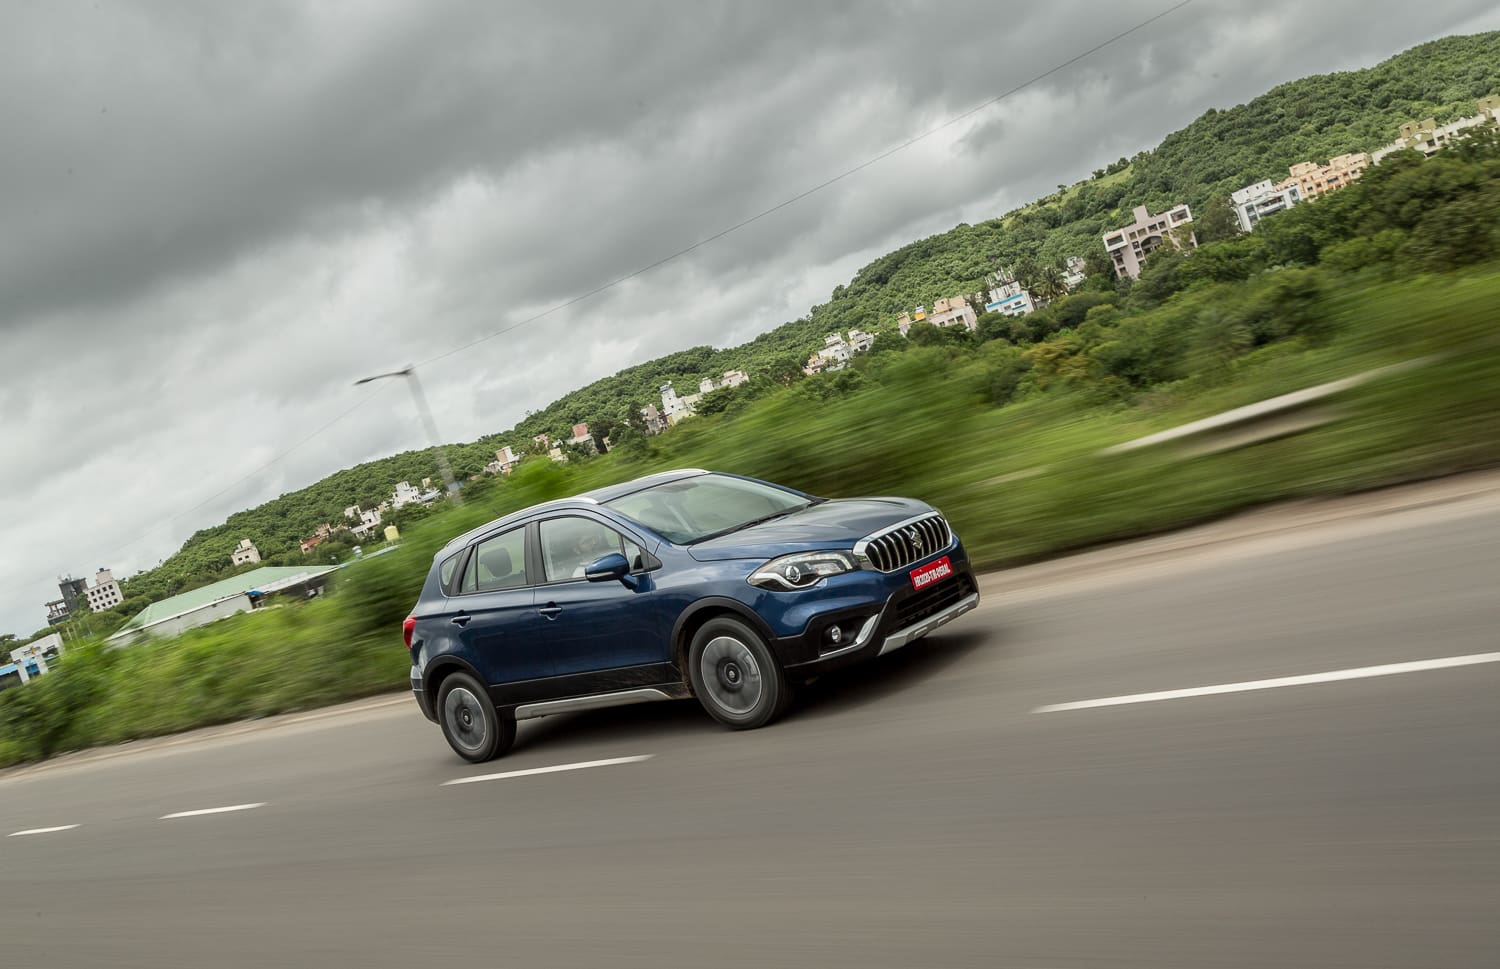 2020 Maruti S-Cross 1.5 Petrol-AT: First Drive Review